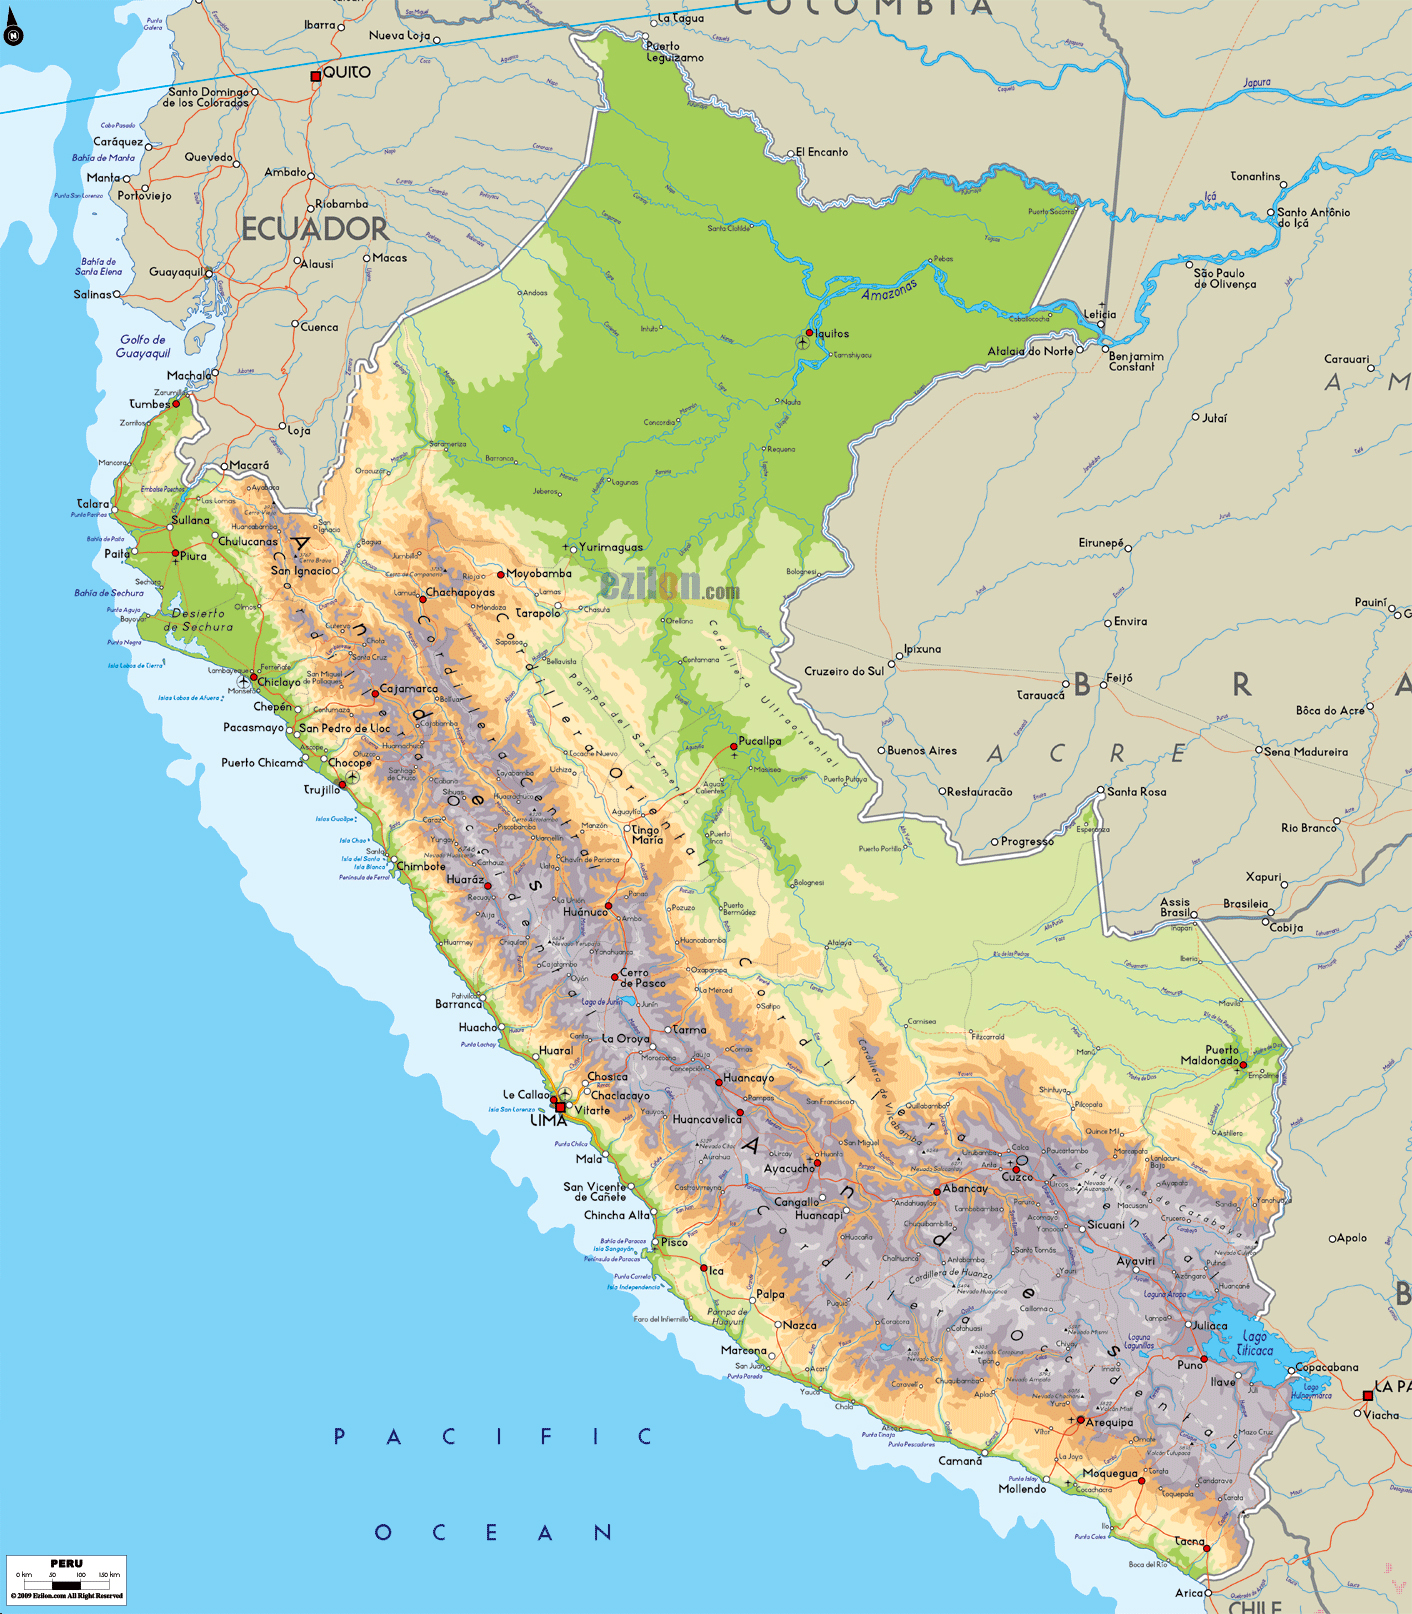 Airports In Peru Map.Large Physical Map Of Peru With Roads Cities And Airports Peru